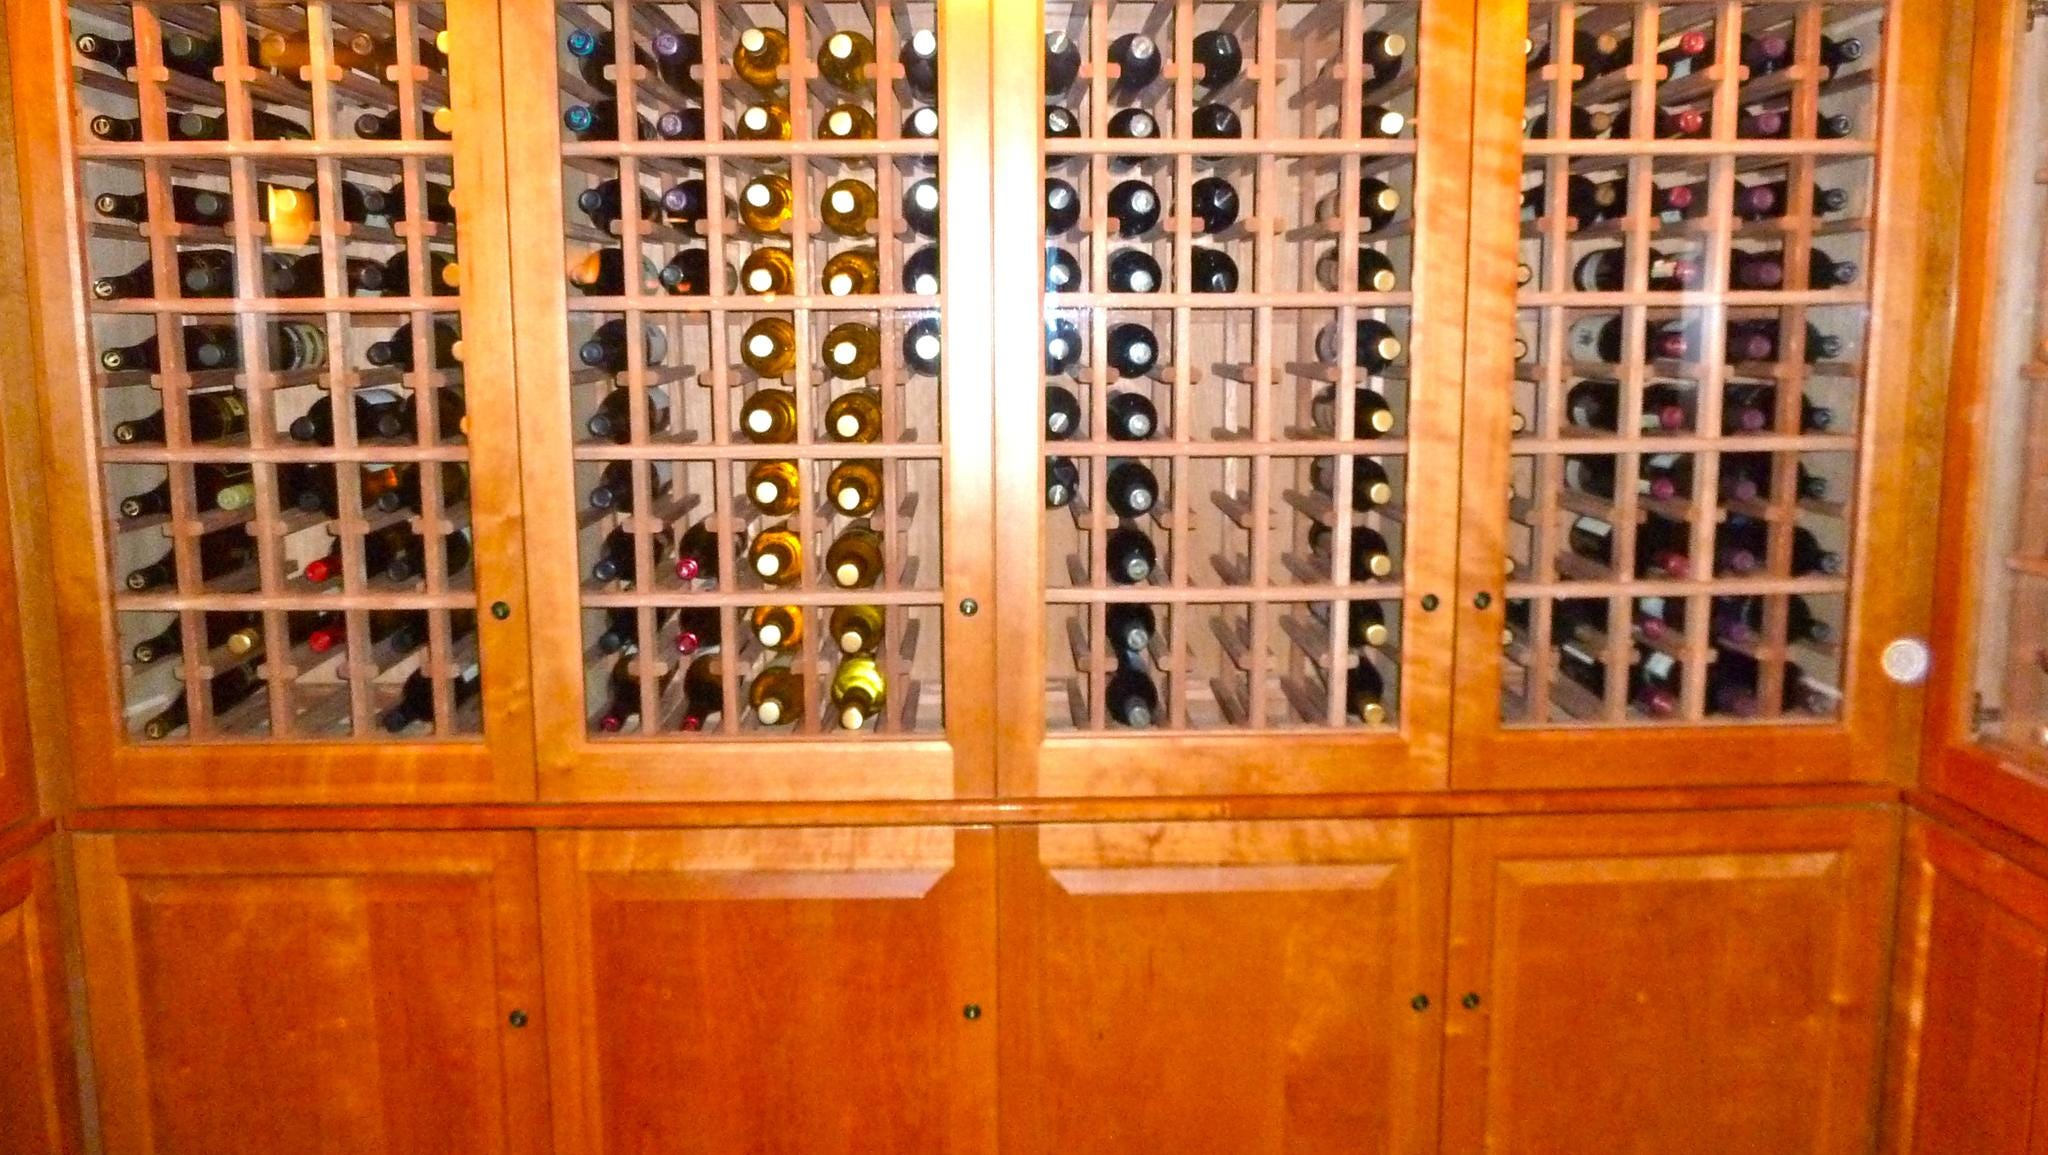 In addition to the wines, micro-brew beers and liquor served at the bar, there is a cabinet with a wide selection of included-in-the fare vintages.